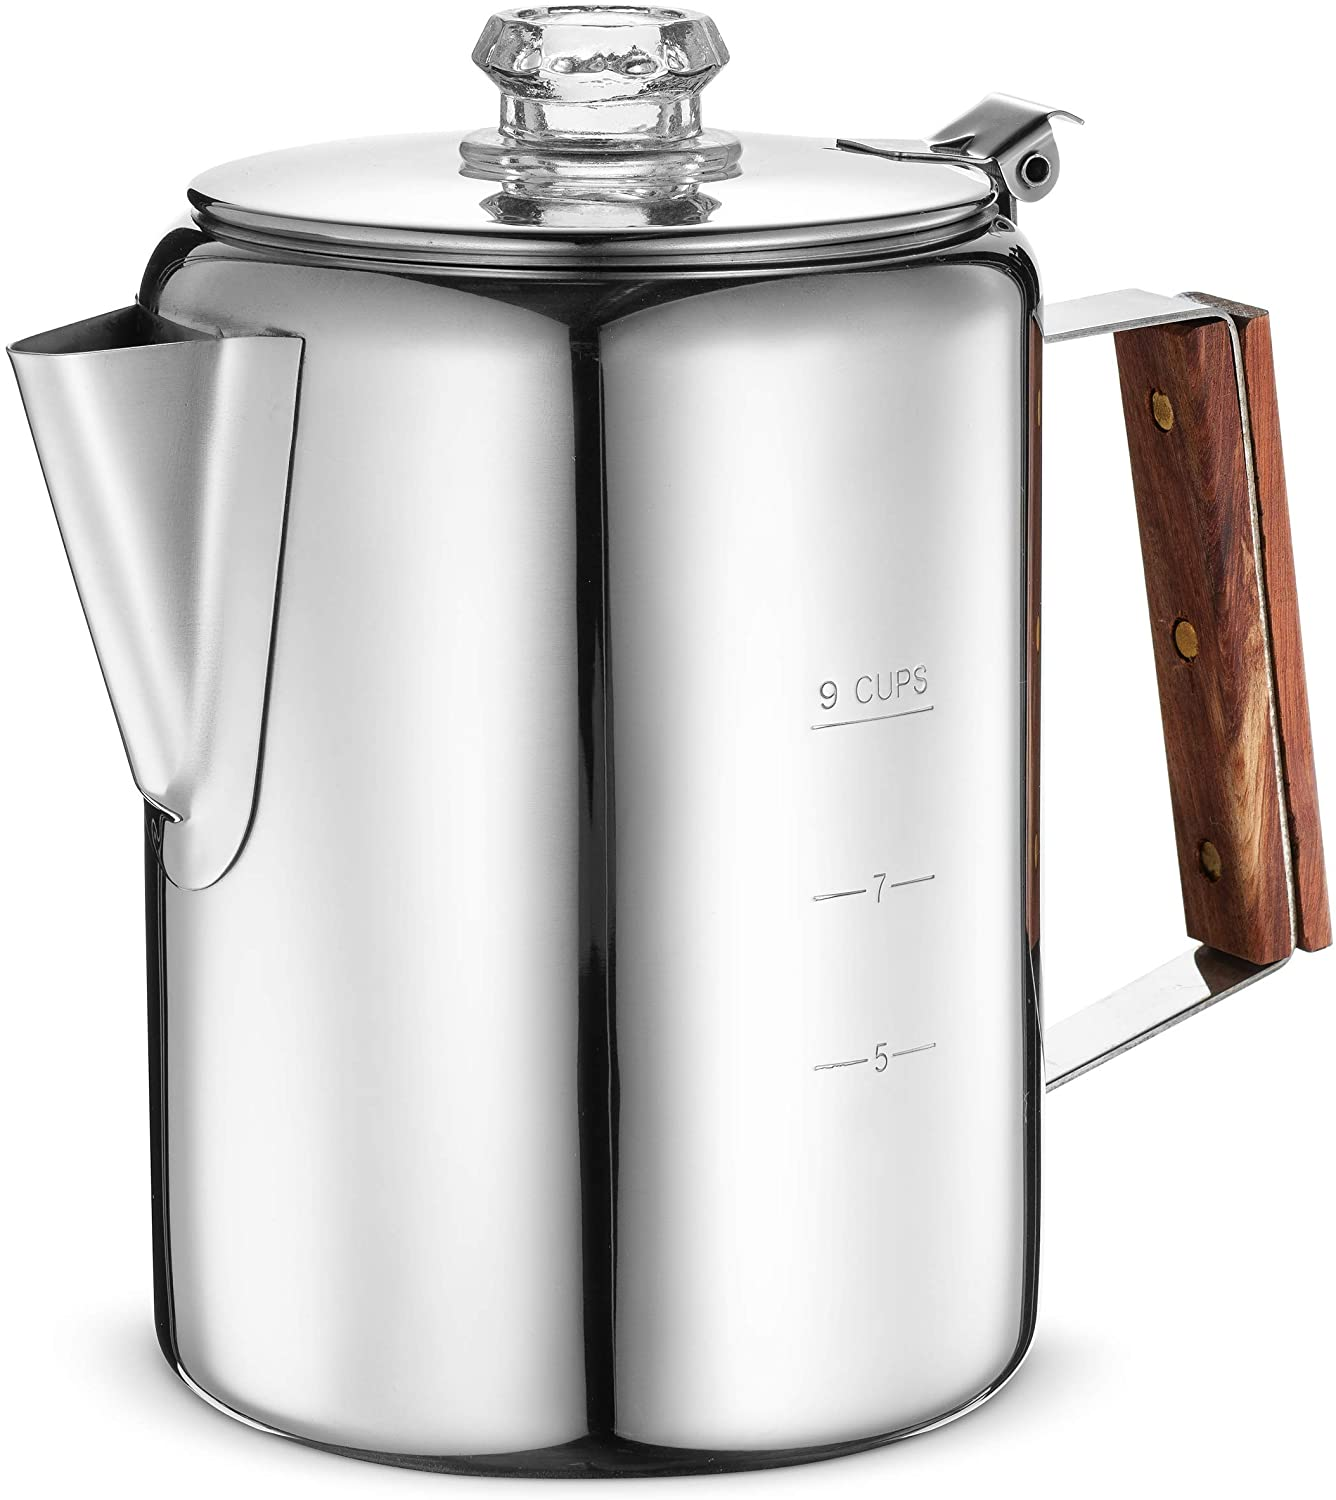 Eurolux Durable Stainless Steel Coffee Percolator, 9-Cup